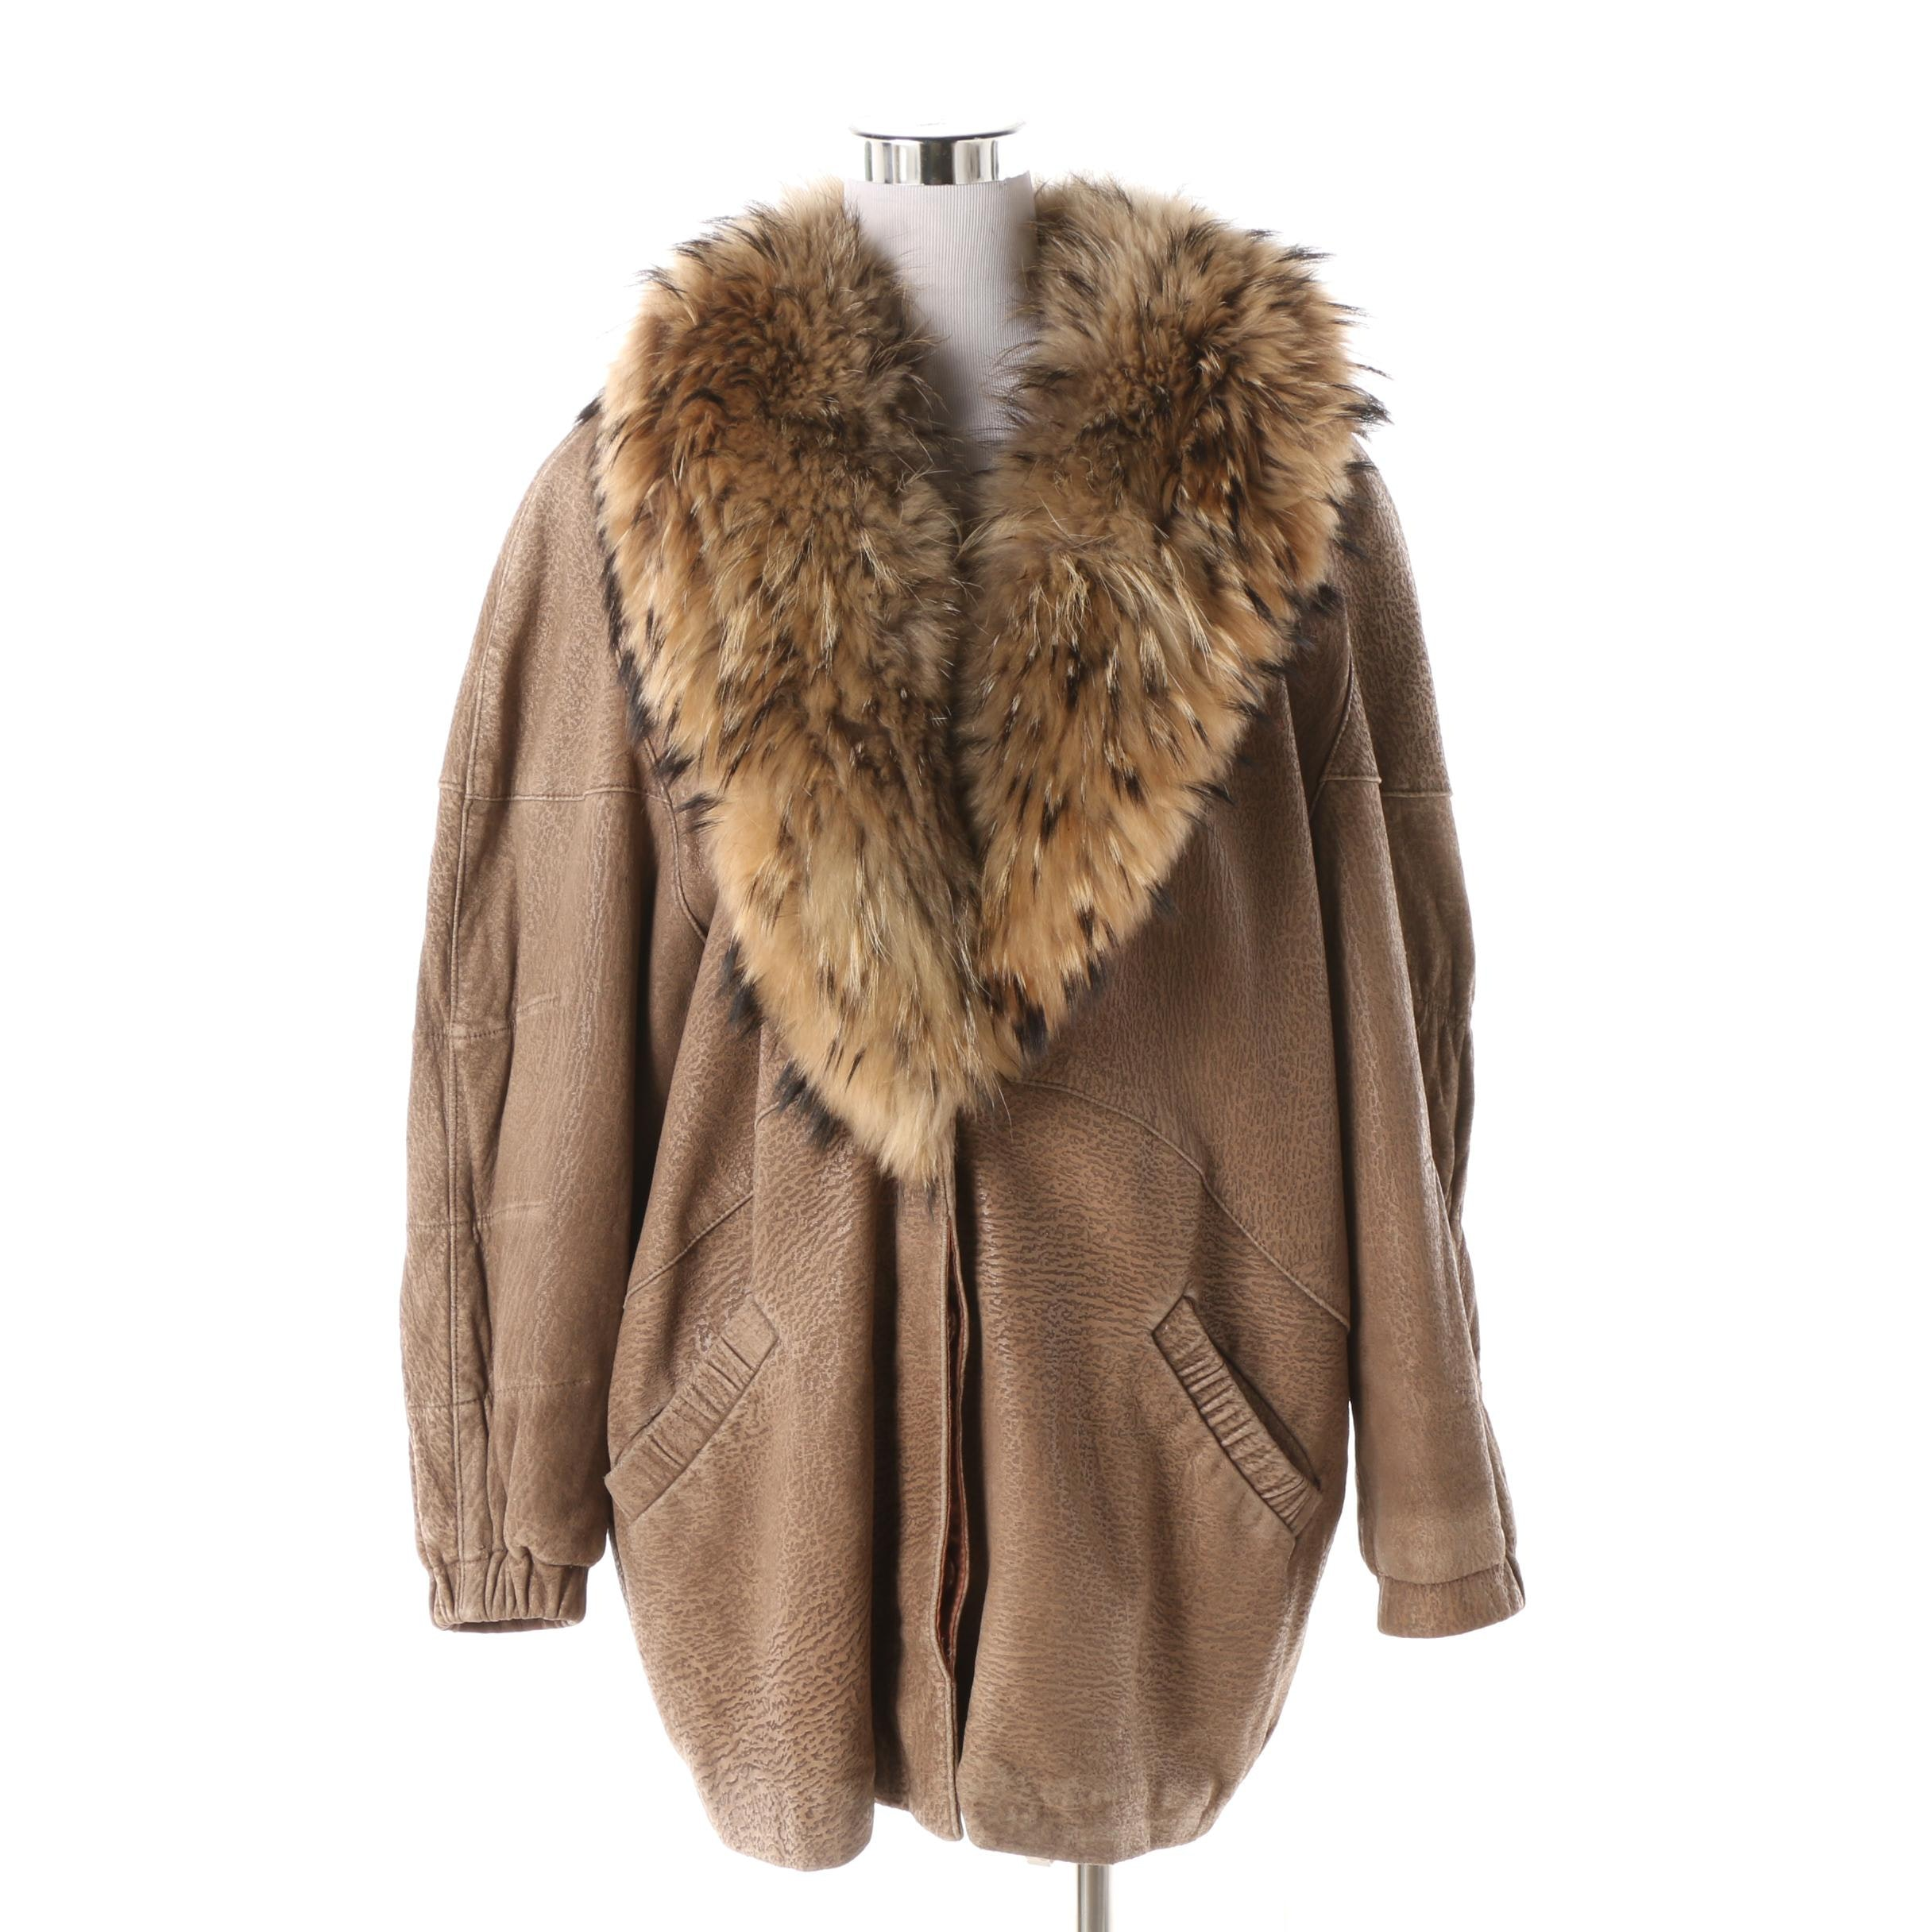 1980s J. Percy for Marvin Richards Taupe Leather Jacket with Raccoon Fur Collar